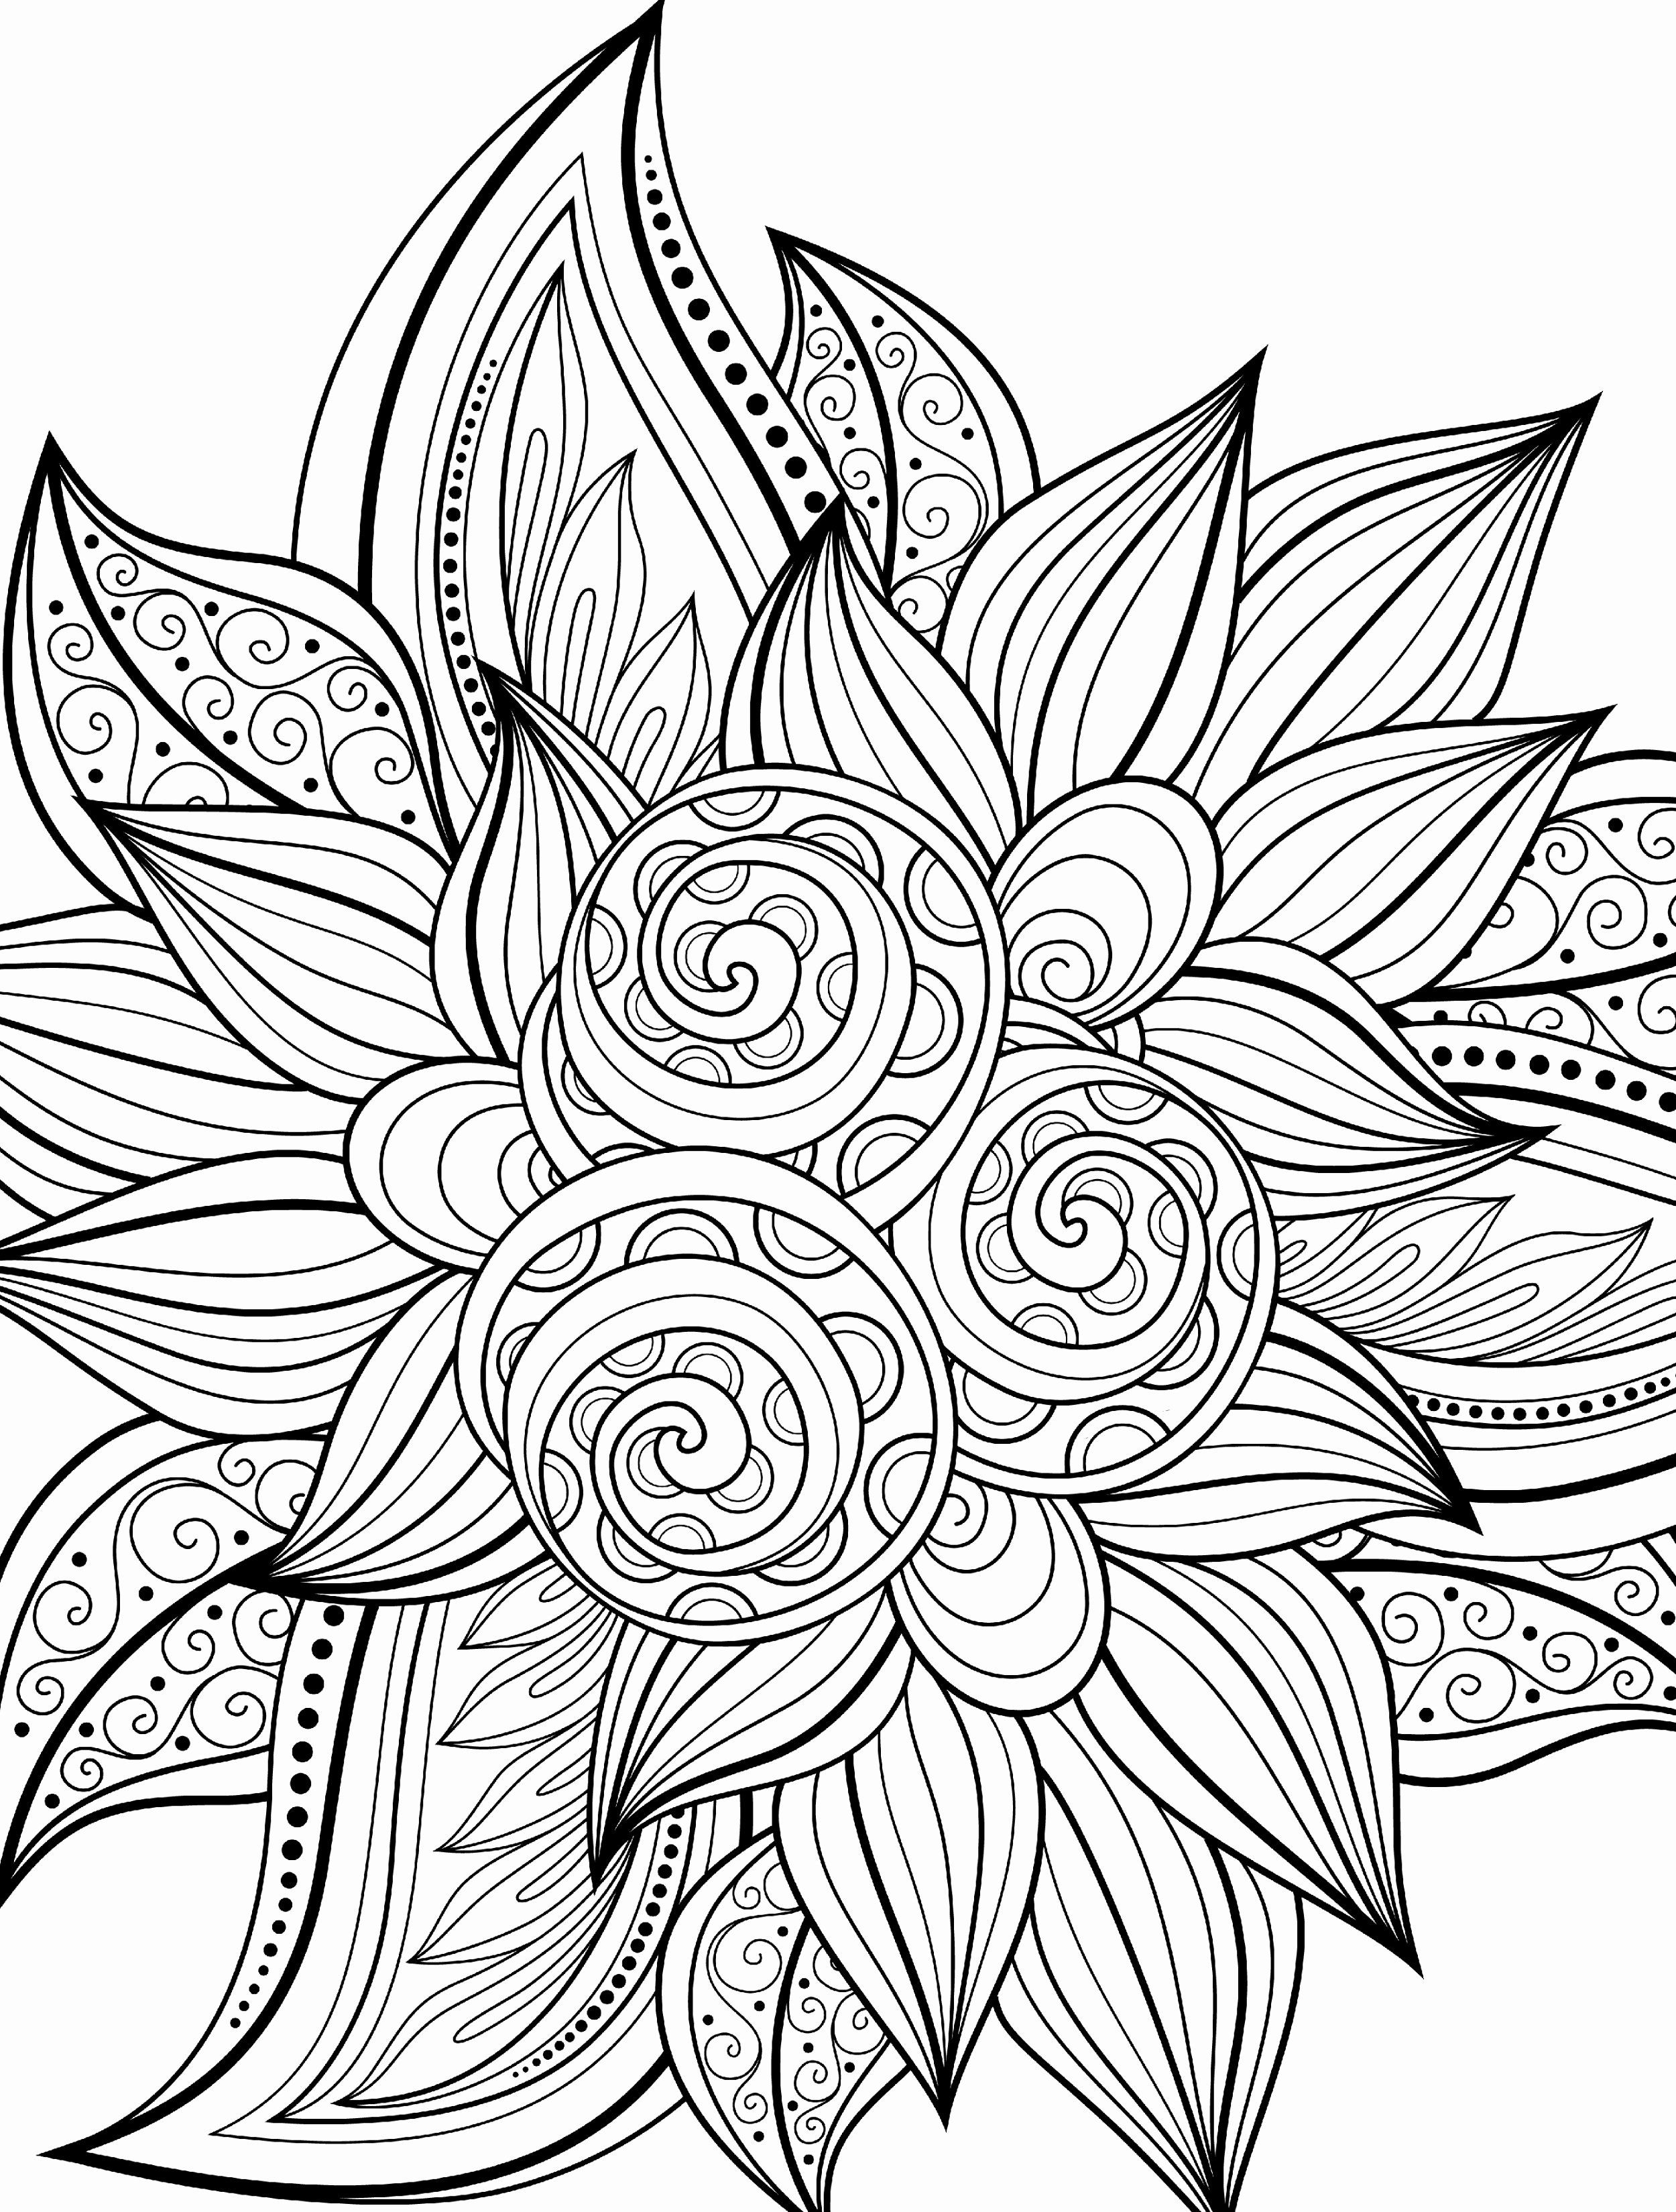 Coloring Pages Adults Easy With Images Free Adult Coloring